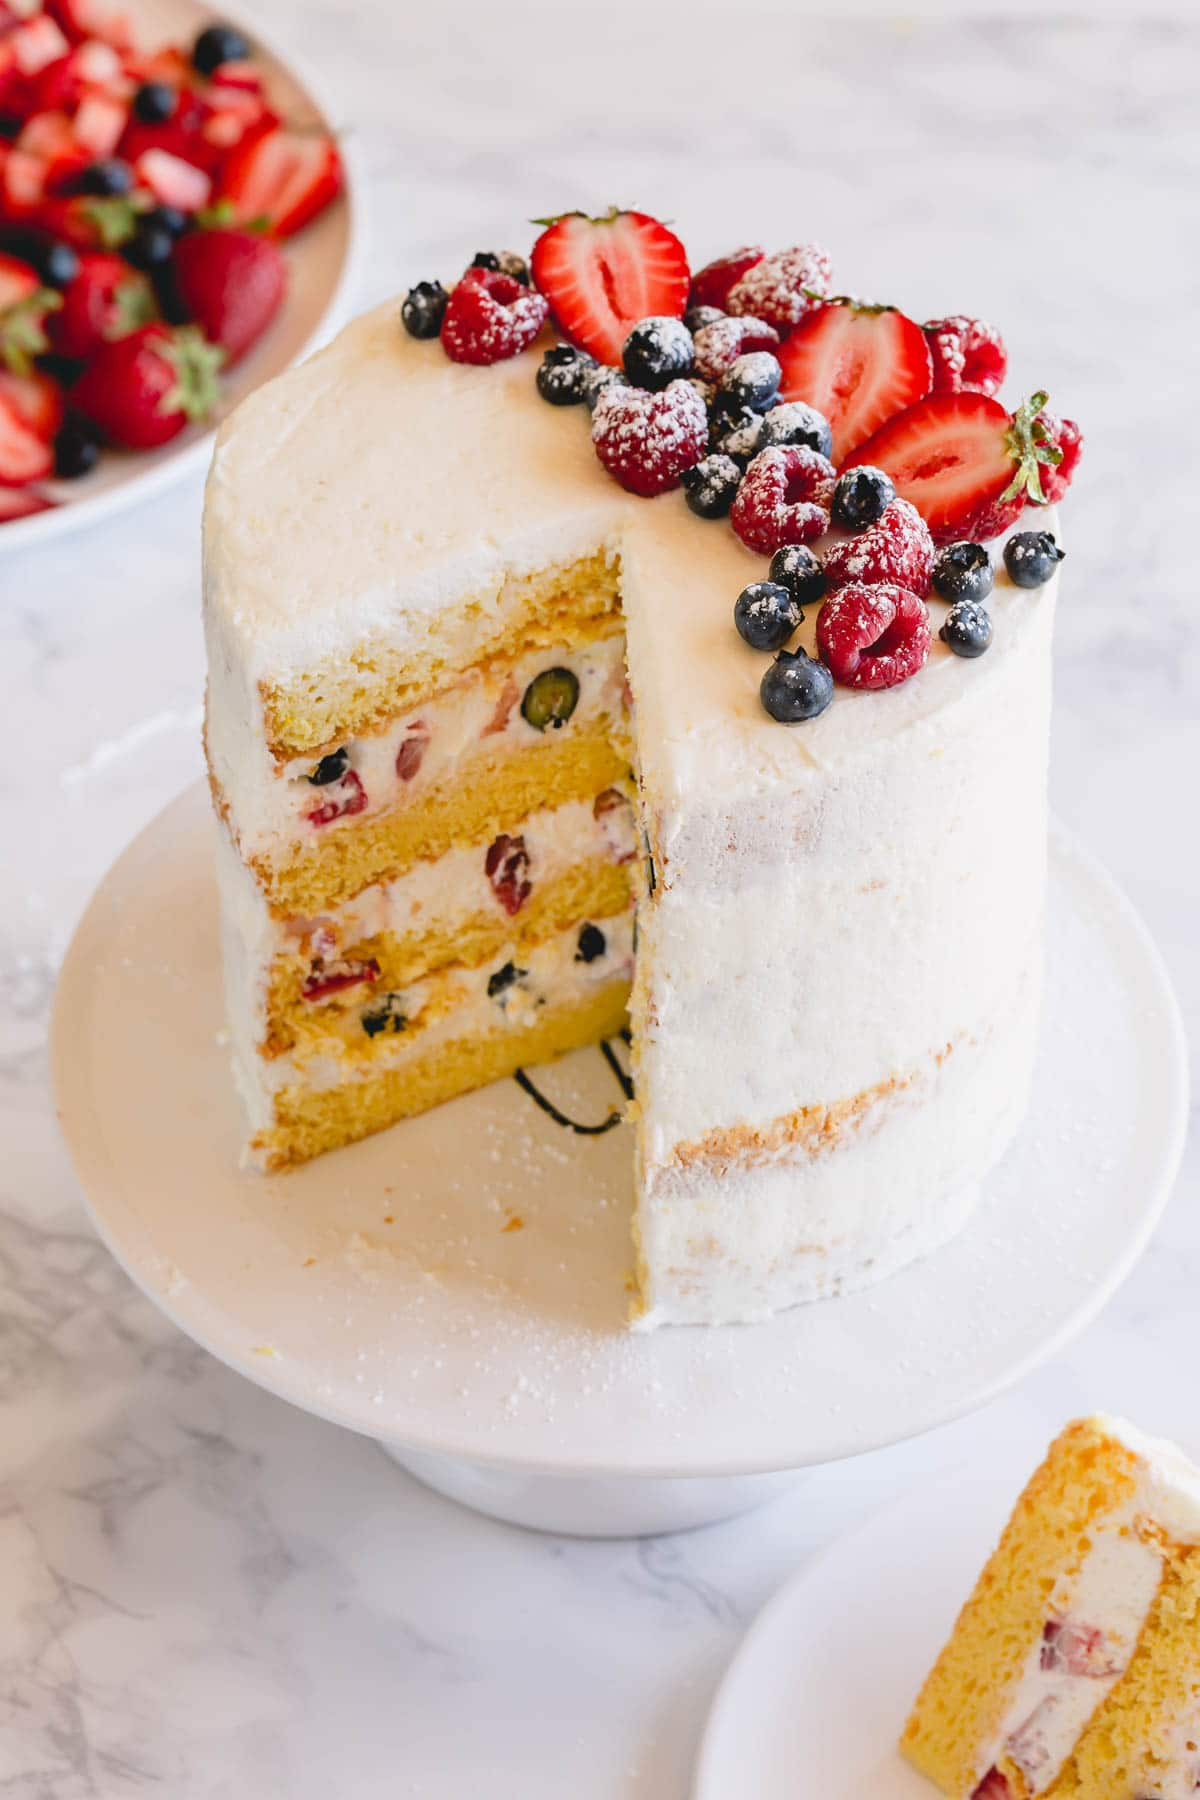 A tall 4-layer cake topped with berries on a cake platter.